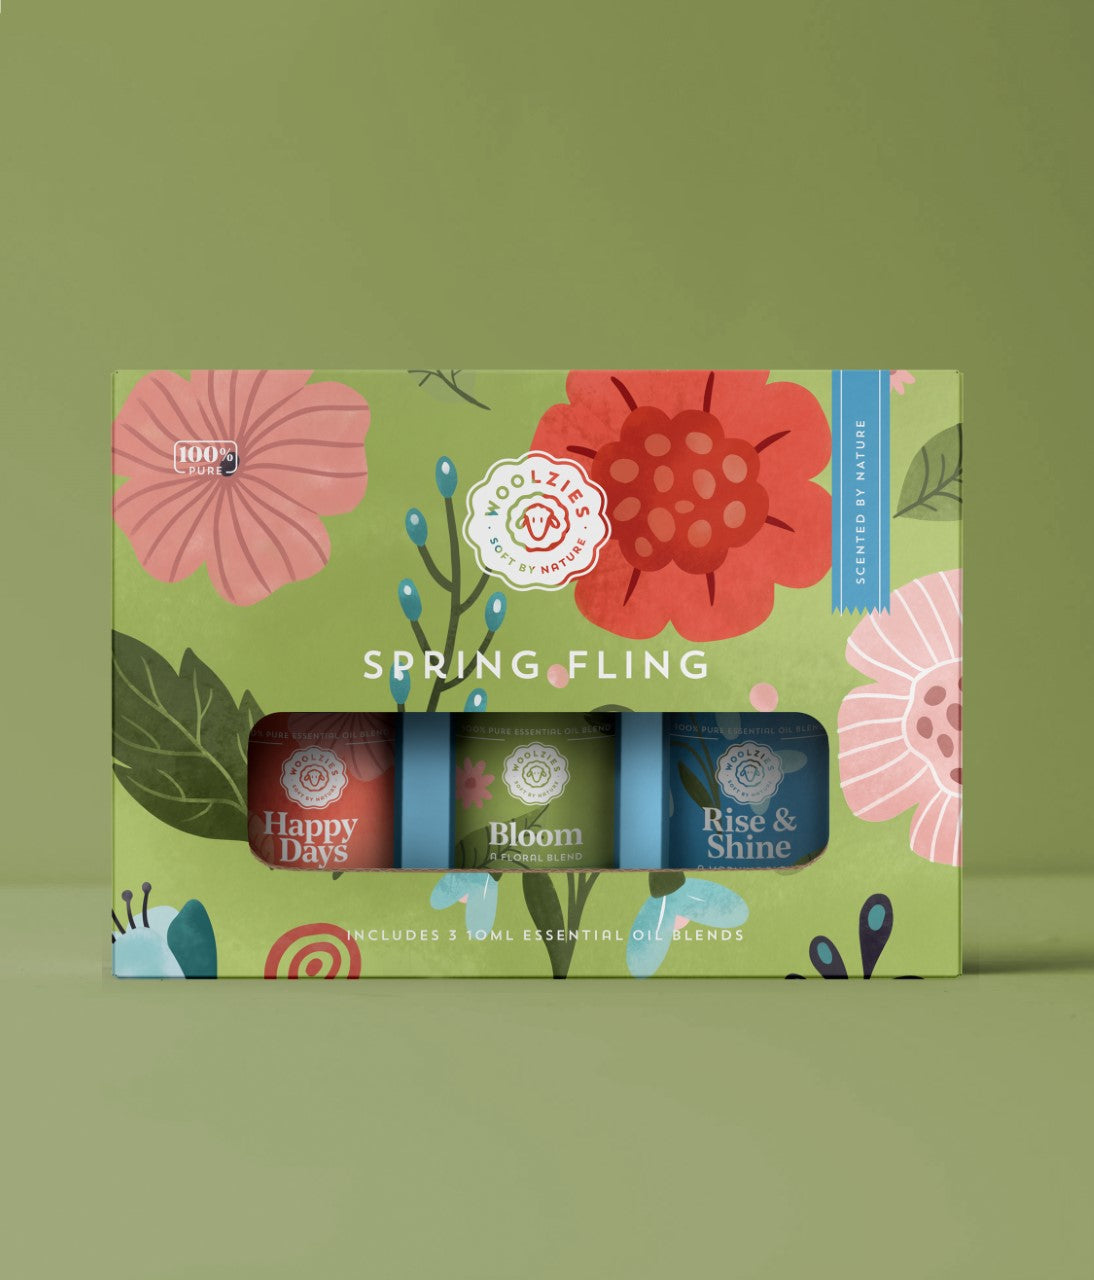 The Spring Fling Collection